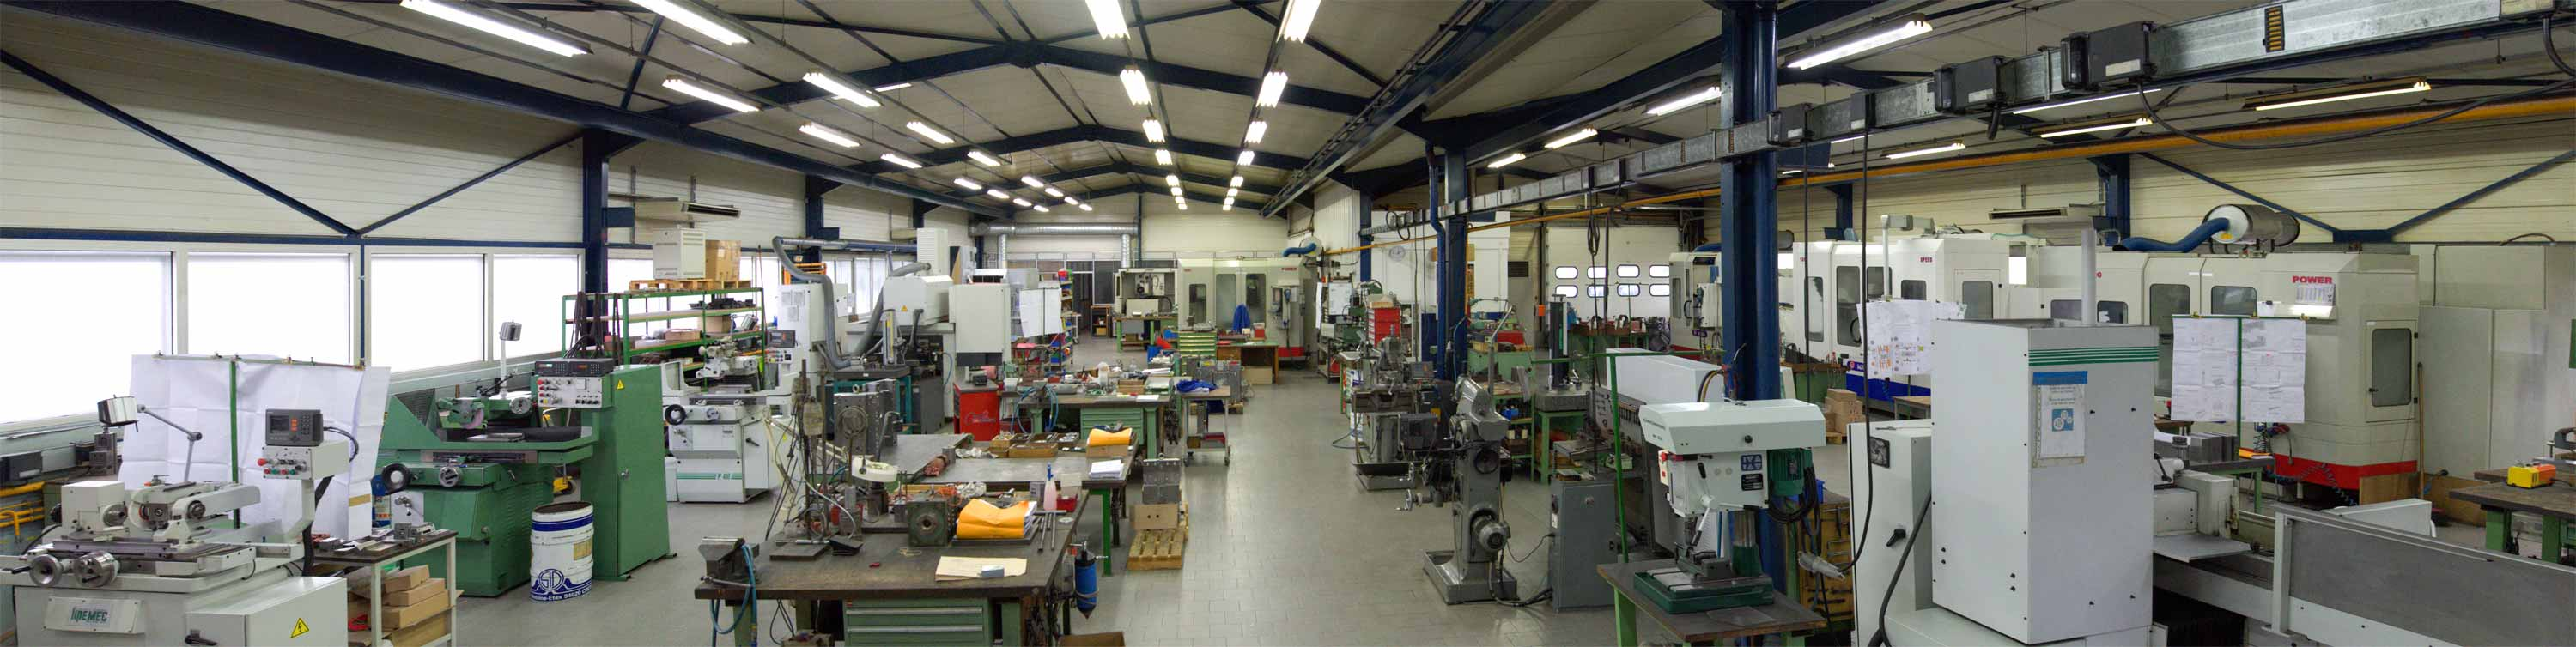 For CNC milling, CNC lathe, EDM and wire cutting, Surface & cylindrical grinding, we own efficient tools dedicated to all of your projects.